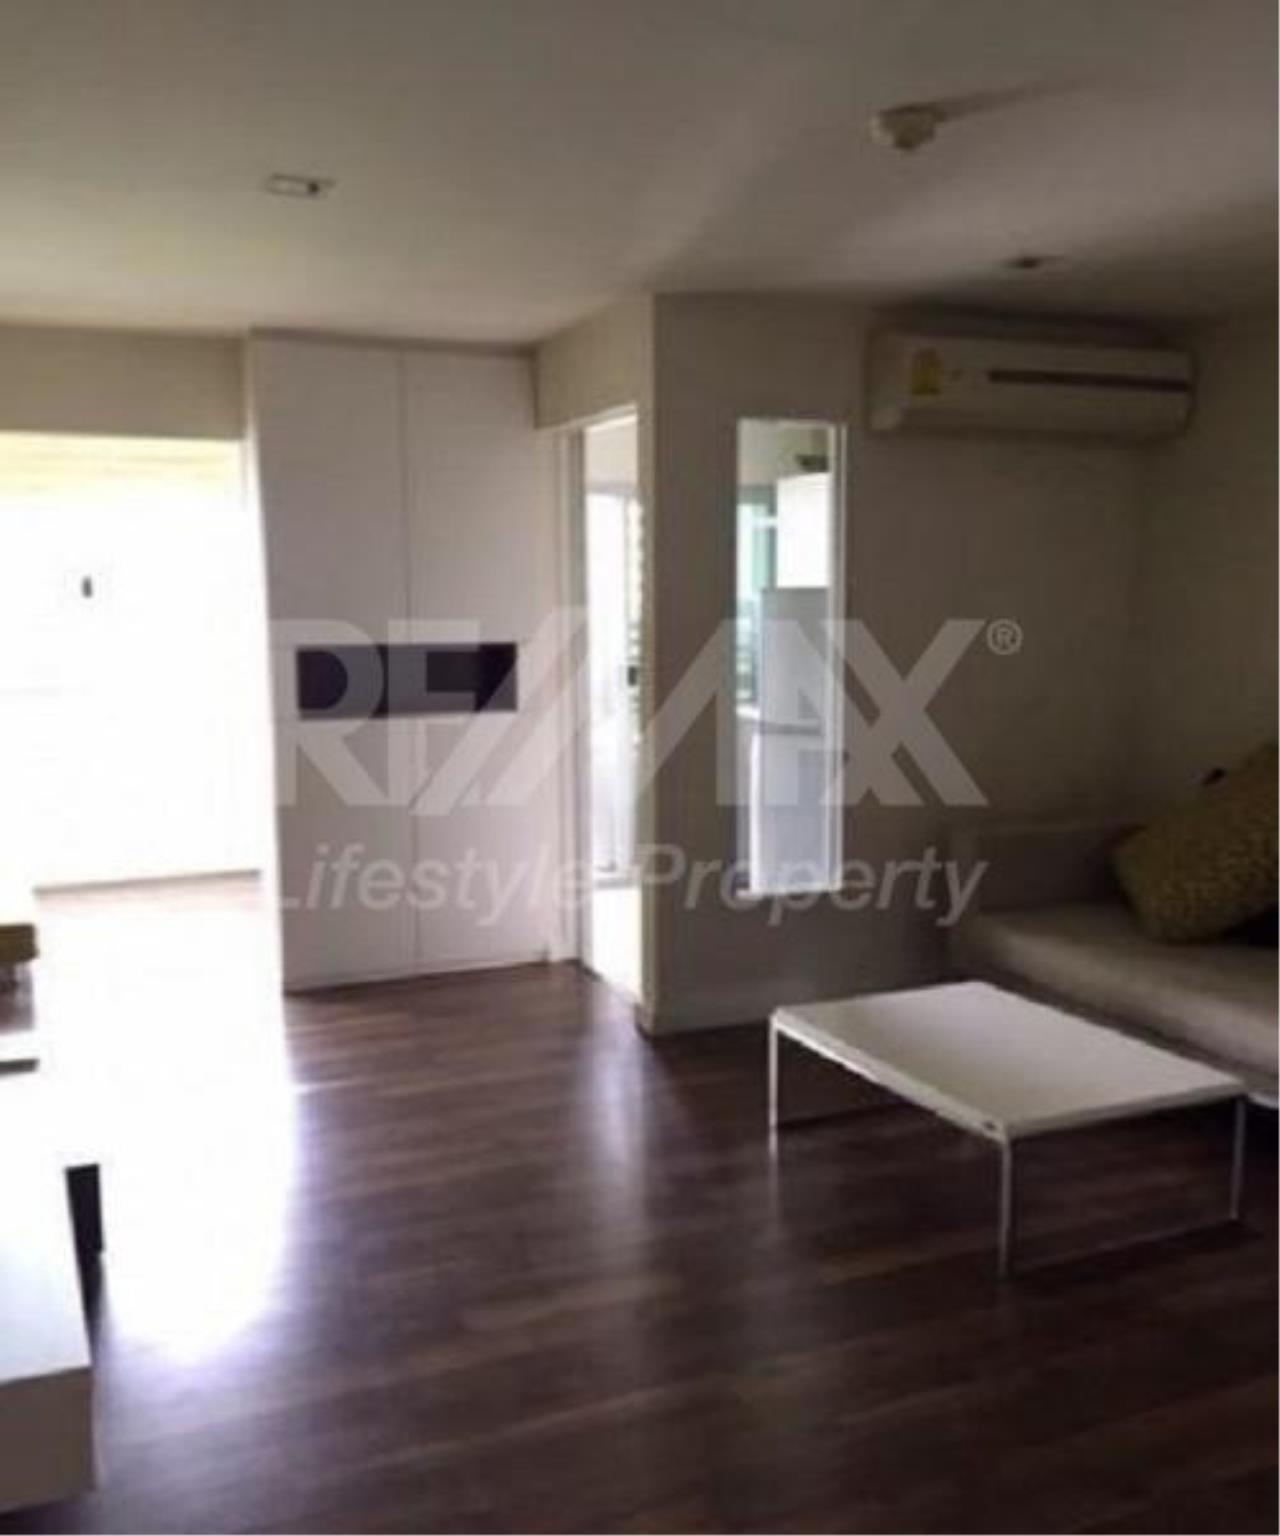 RE/MAX LifeStyle Property Agency's The Room Sukhumvit 79 7